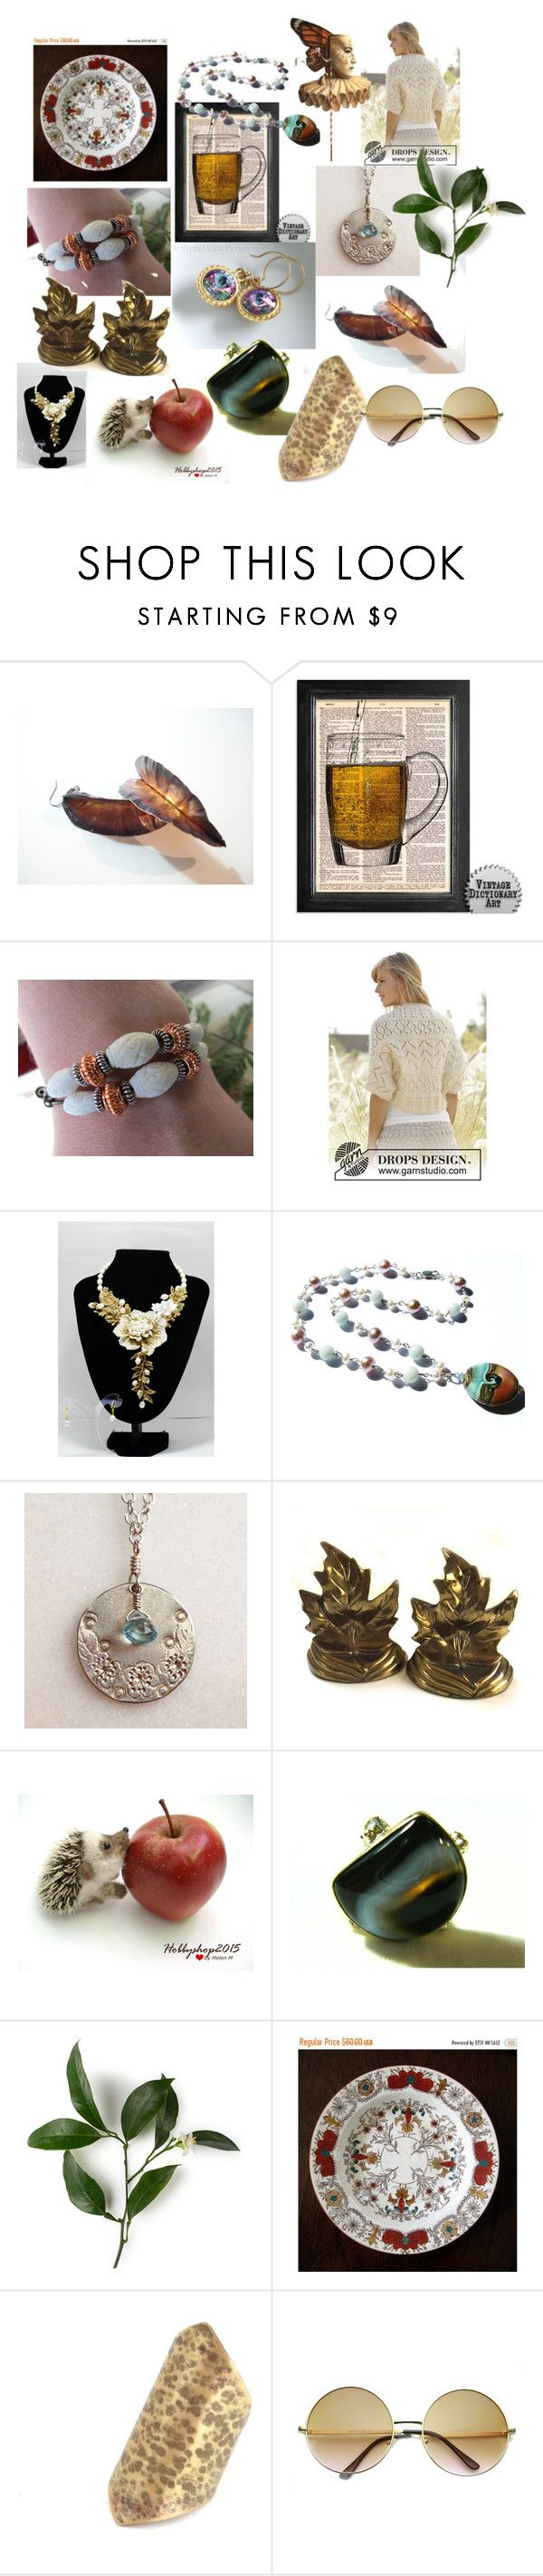 Wonderful Gifts on Etsy by anna-recycle on Polyvore featuring Cadeau, ZeroUV, modern, rustic and vintage